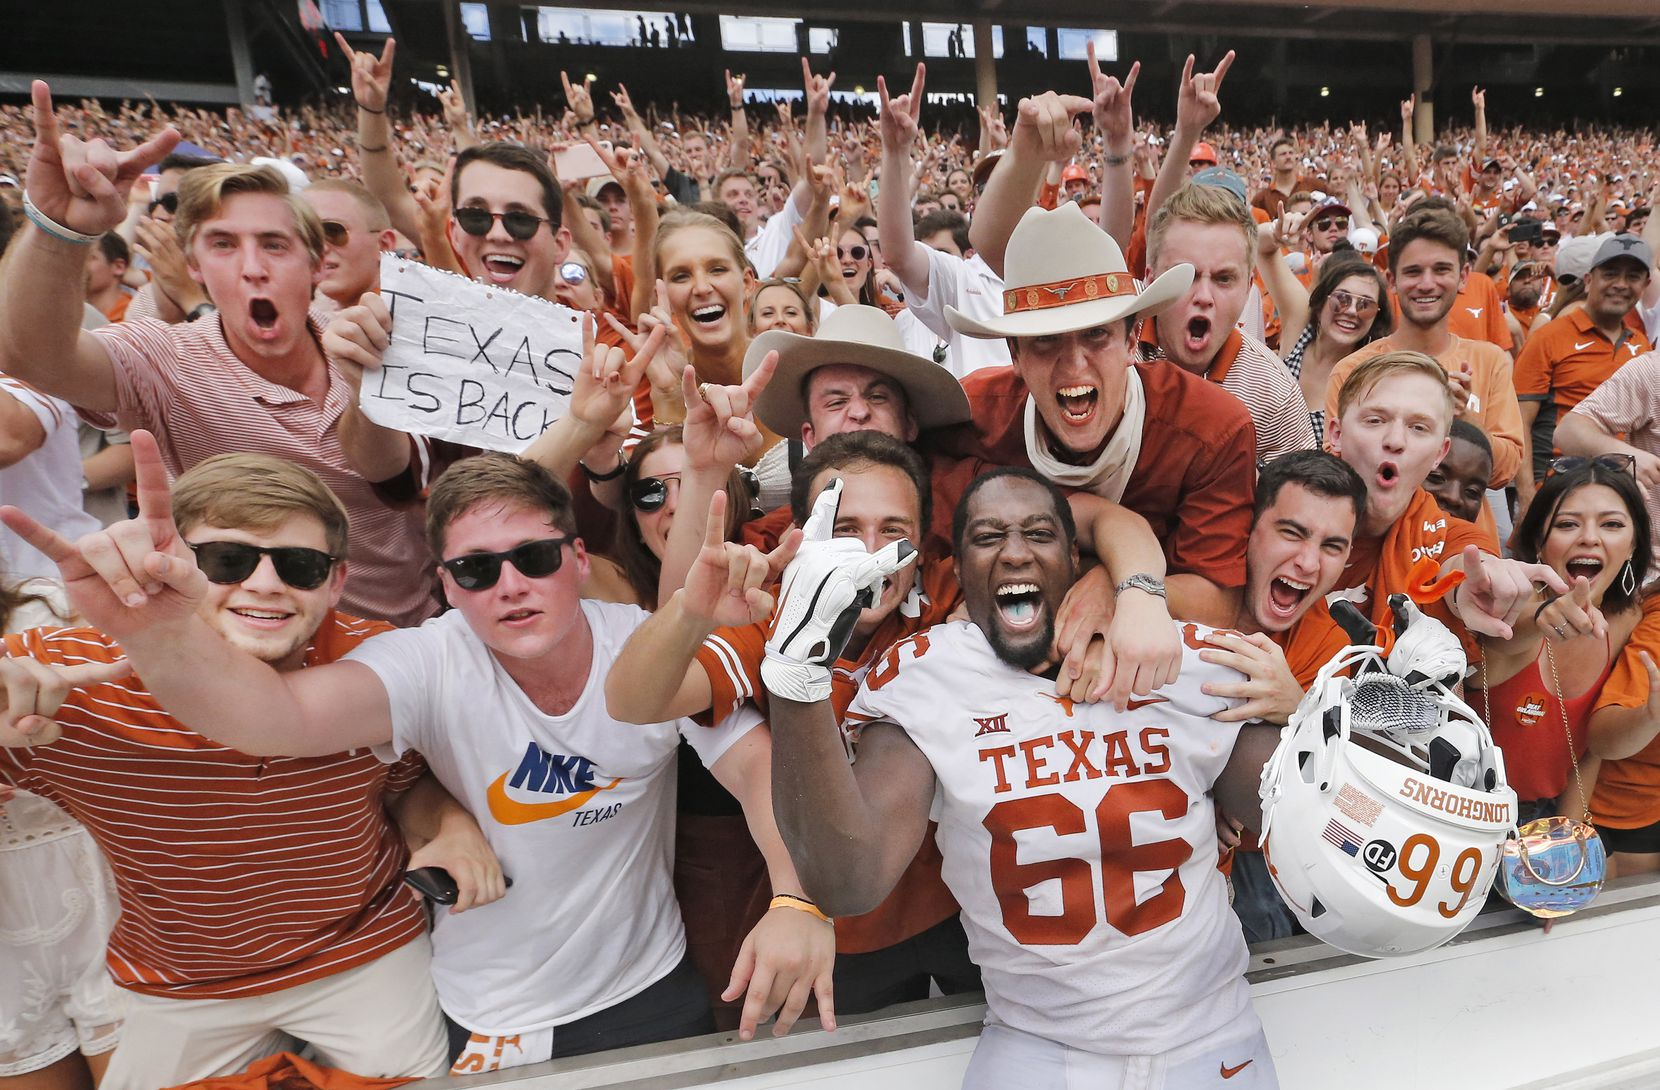 University of Texas offensive lineman Calvin Anderson (66) celebrates with fans during the NCAA football game between the Longhorns and the University of Oklahoma at the Cotton Bowl in Dallas on Saturday, October 6, 2018.